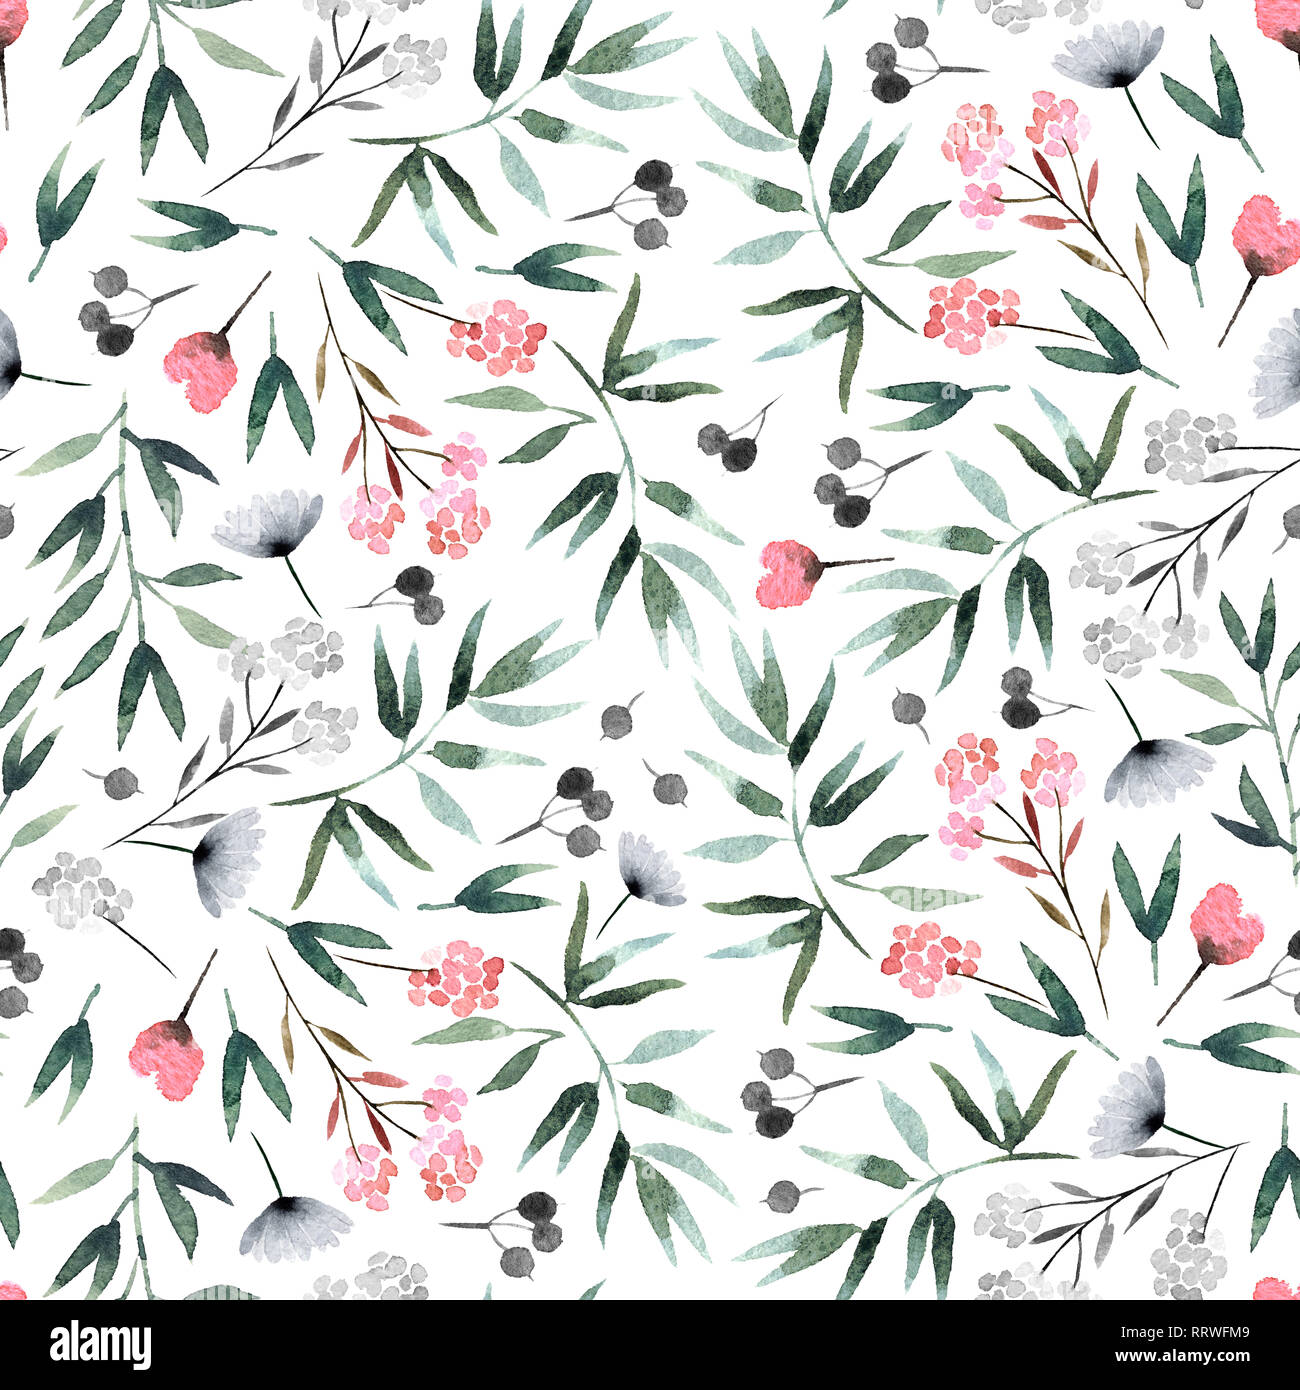 Isolated On White Background Seamless Pattern With Flora For